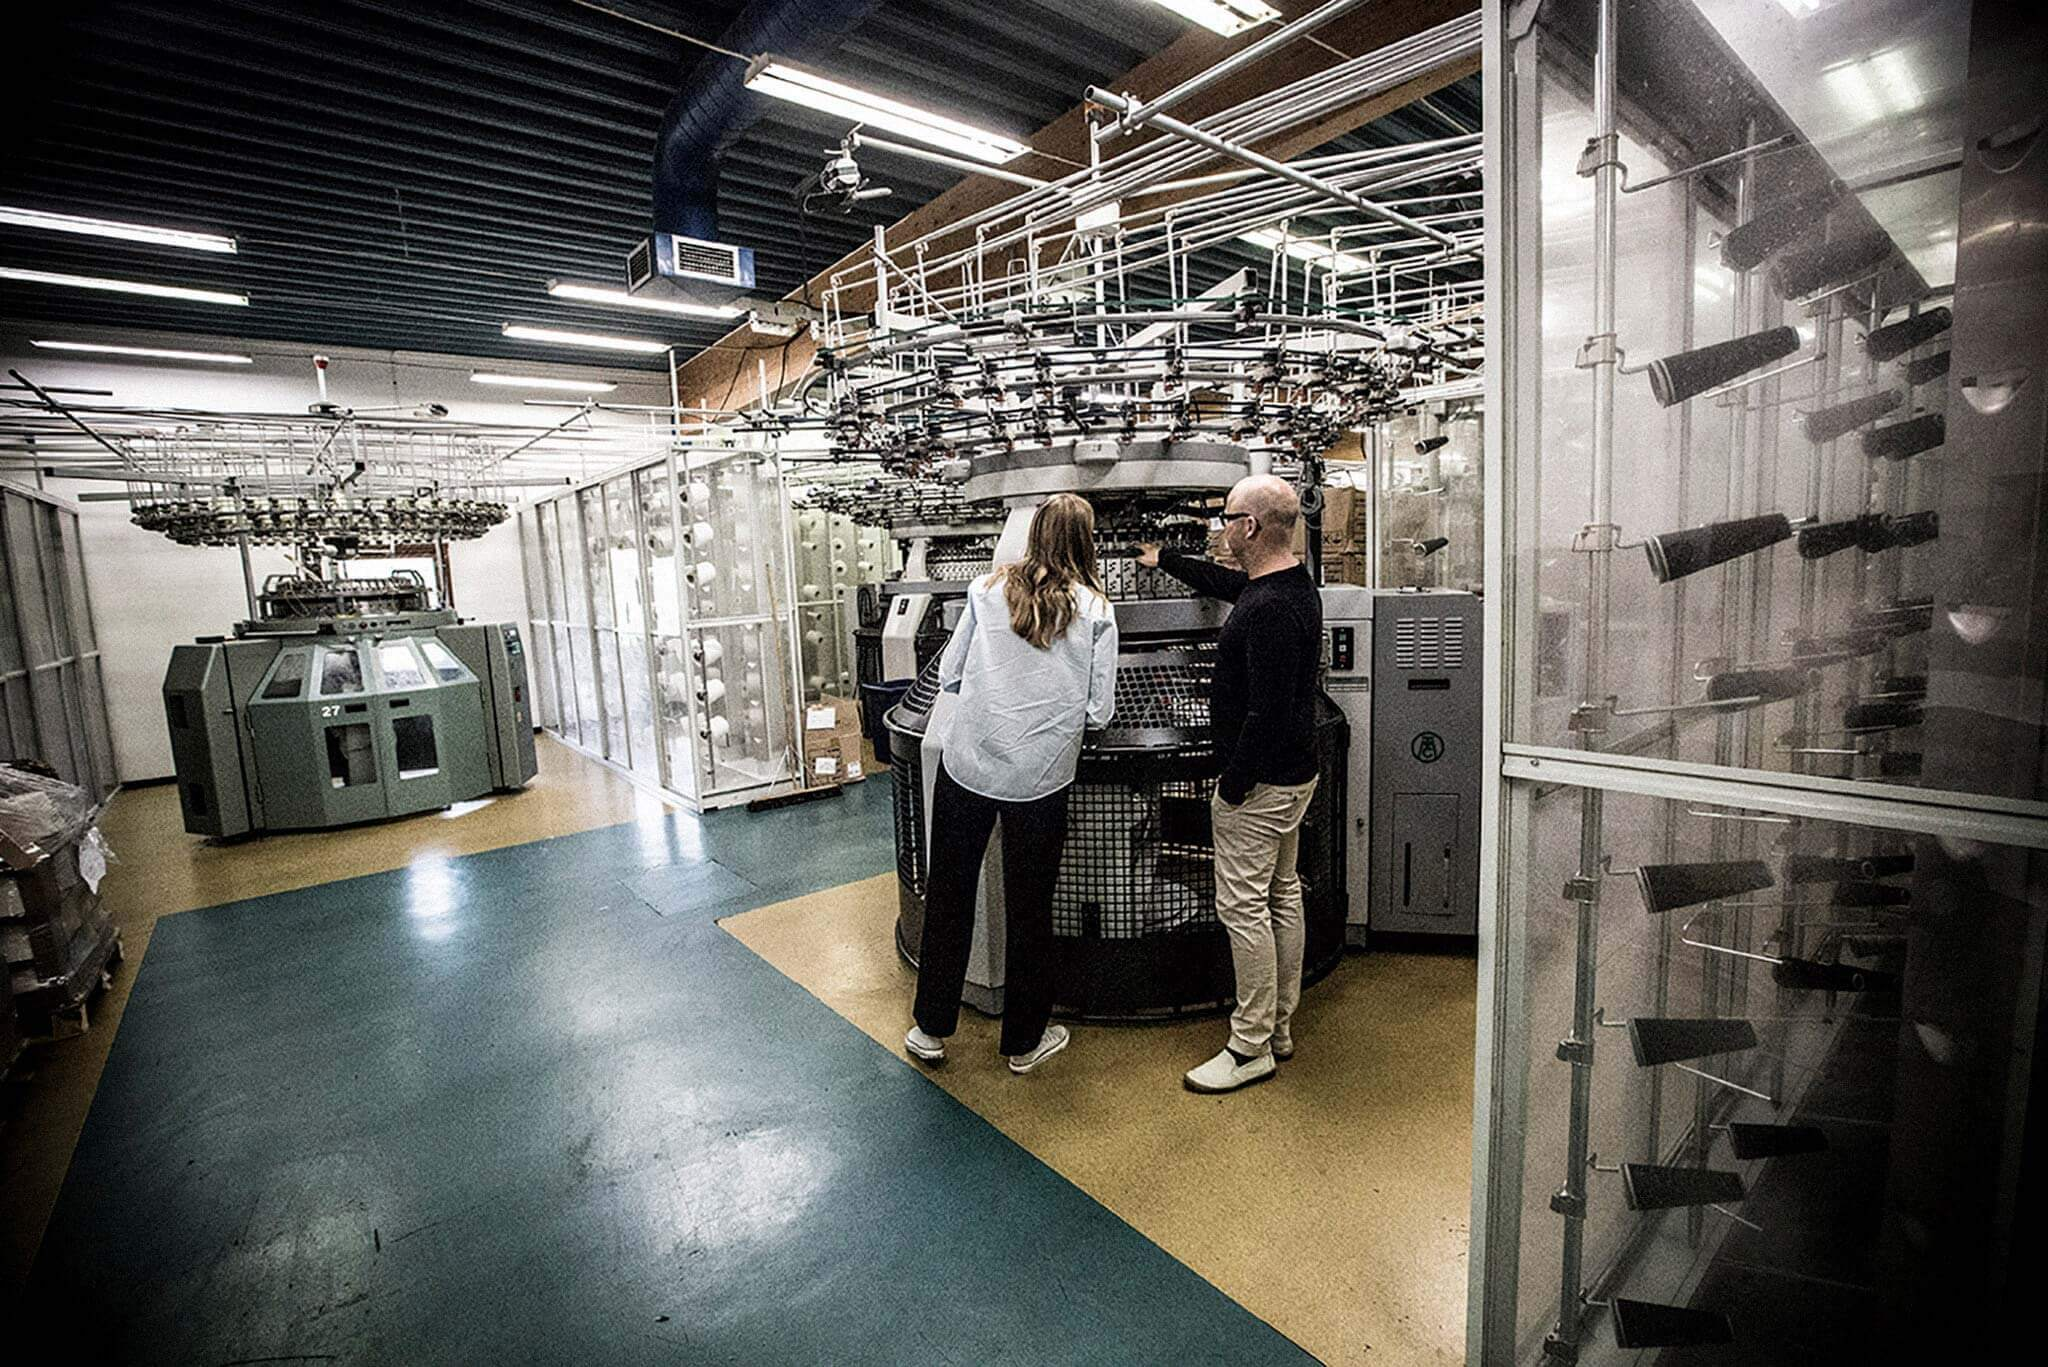 Lisa Bergstrand inspects a knitting machine with a man at Märback Tricot, in southern Sweden